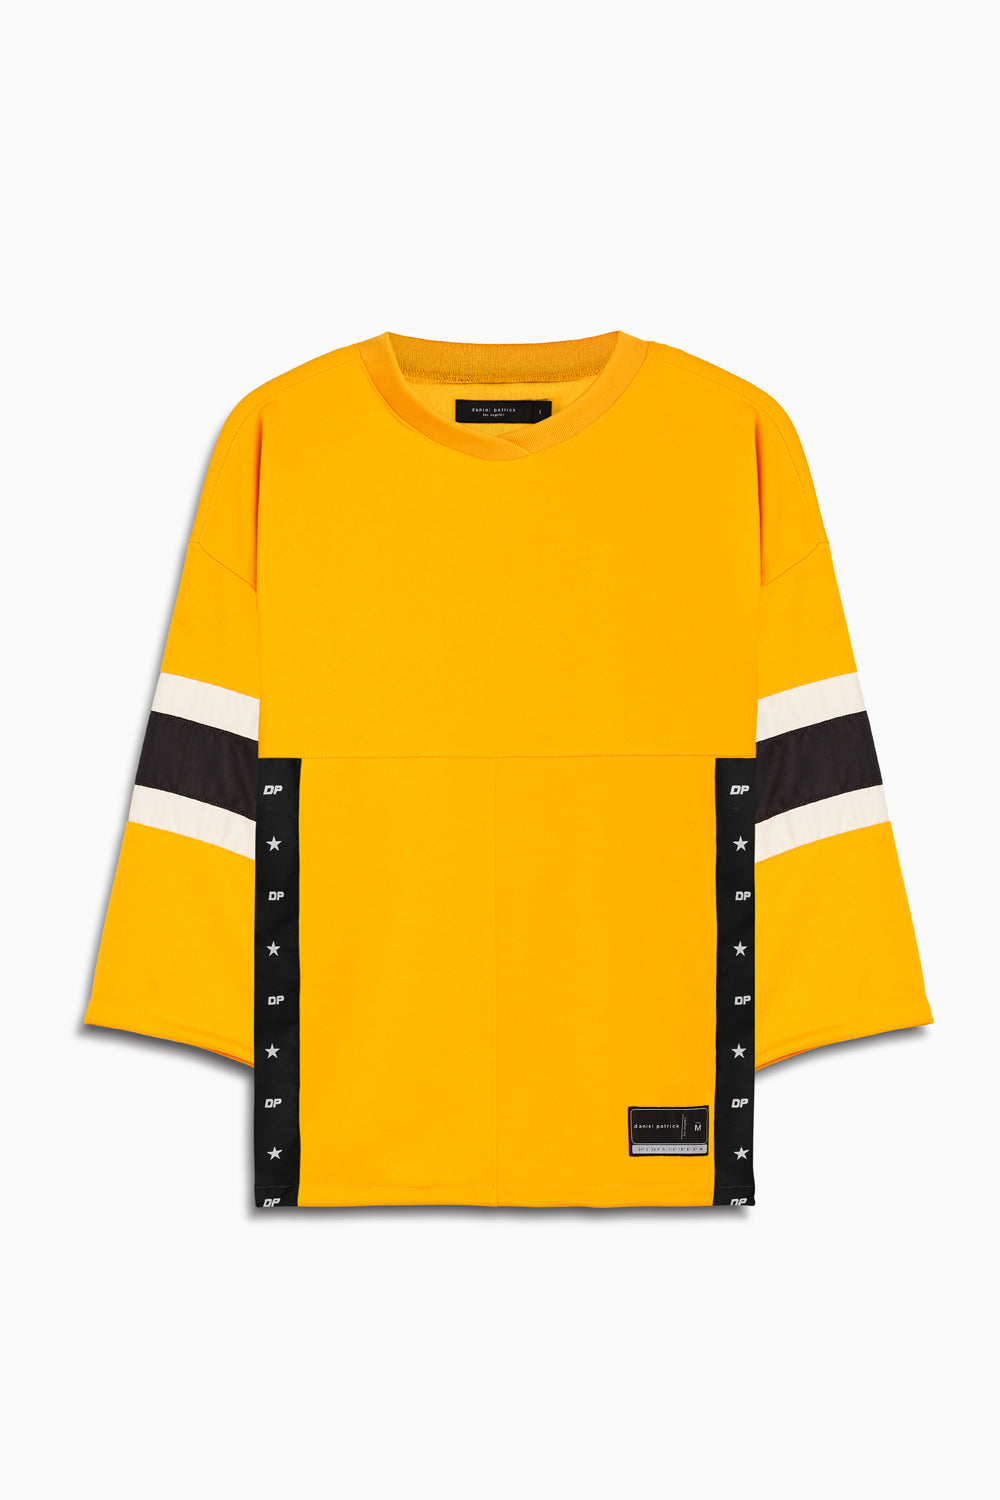 3/4 sleeve jersey in yellow/black/ivory by daniel patrick